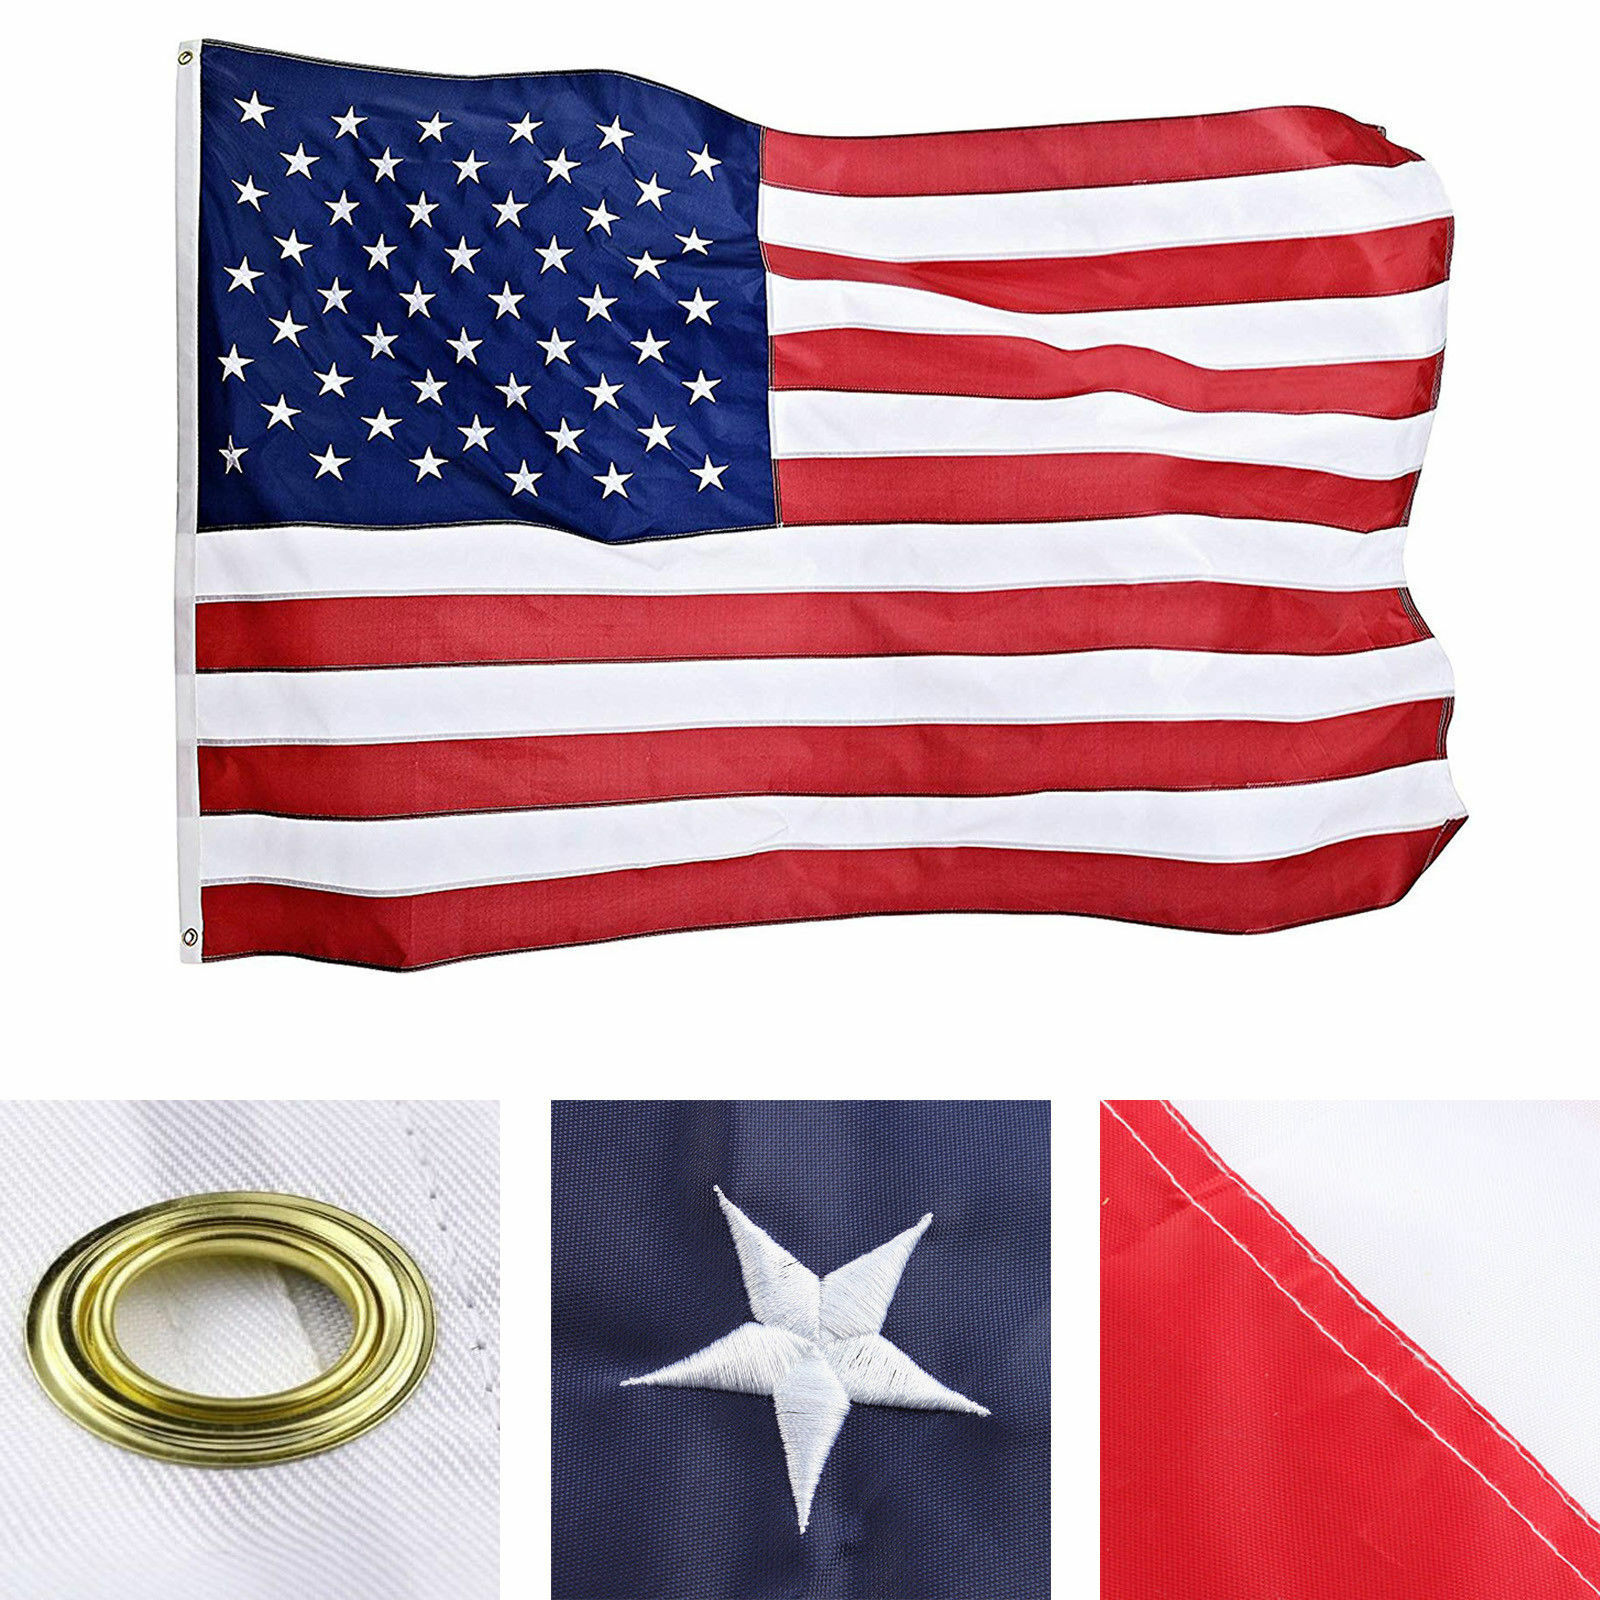 3×5 ft US American Flag Heavy Duty Embroidered Stars Sewn Stripes Grommets Nylon Collectibles